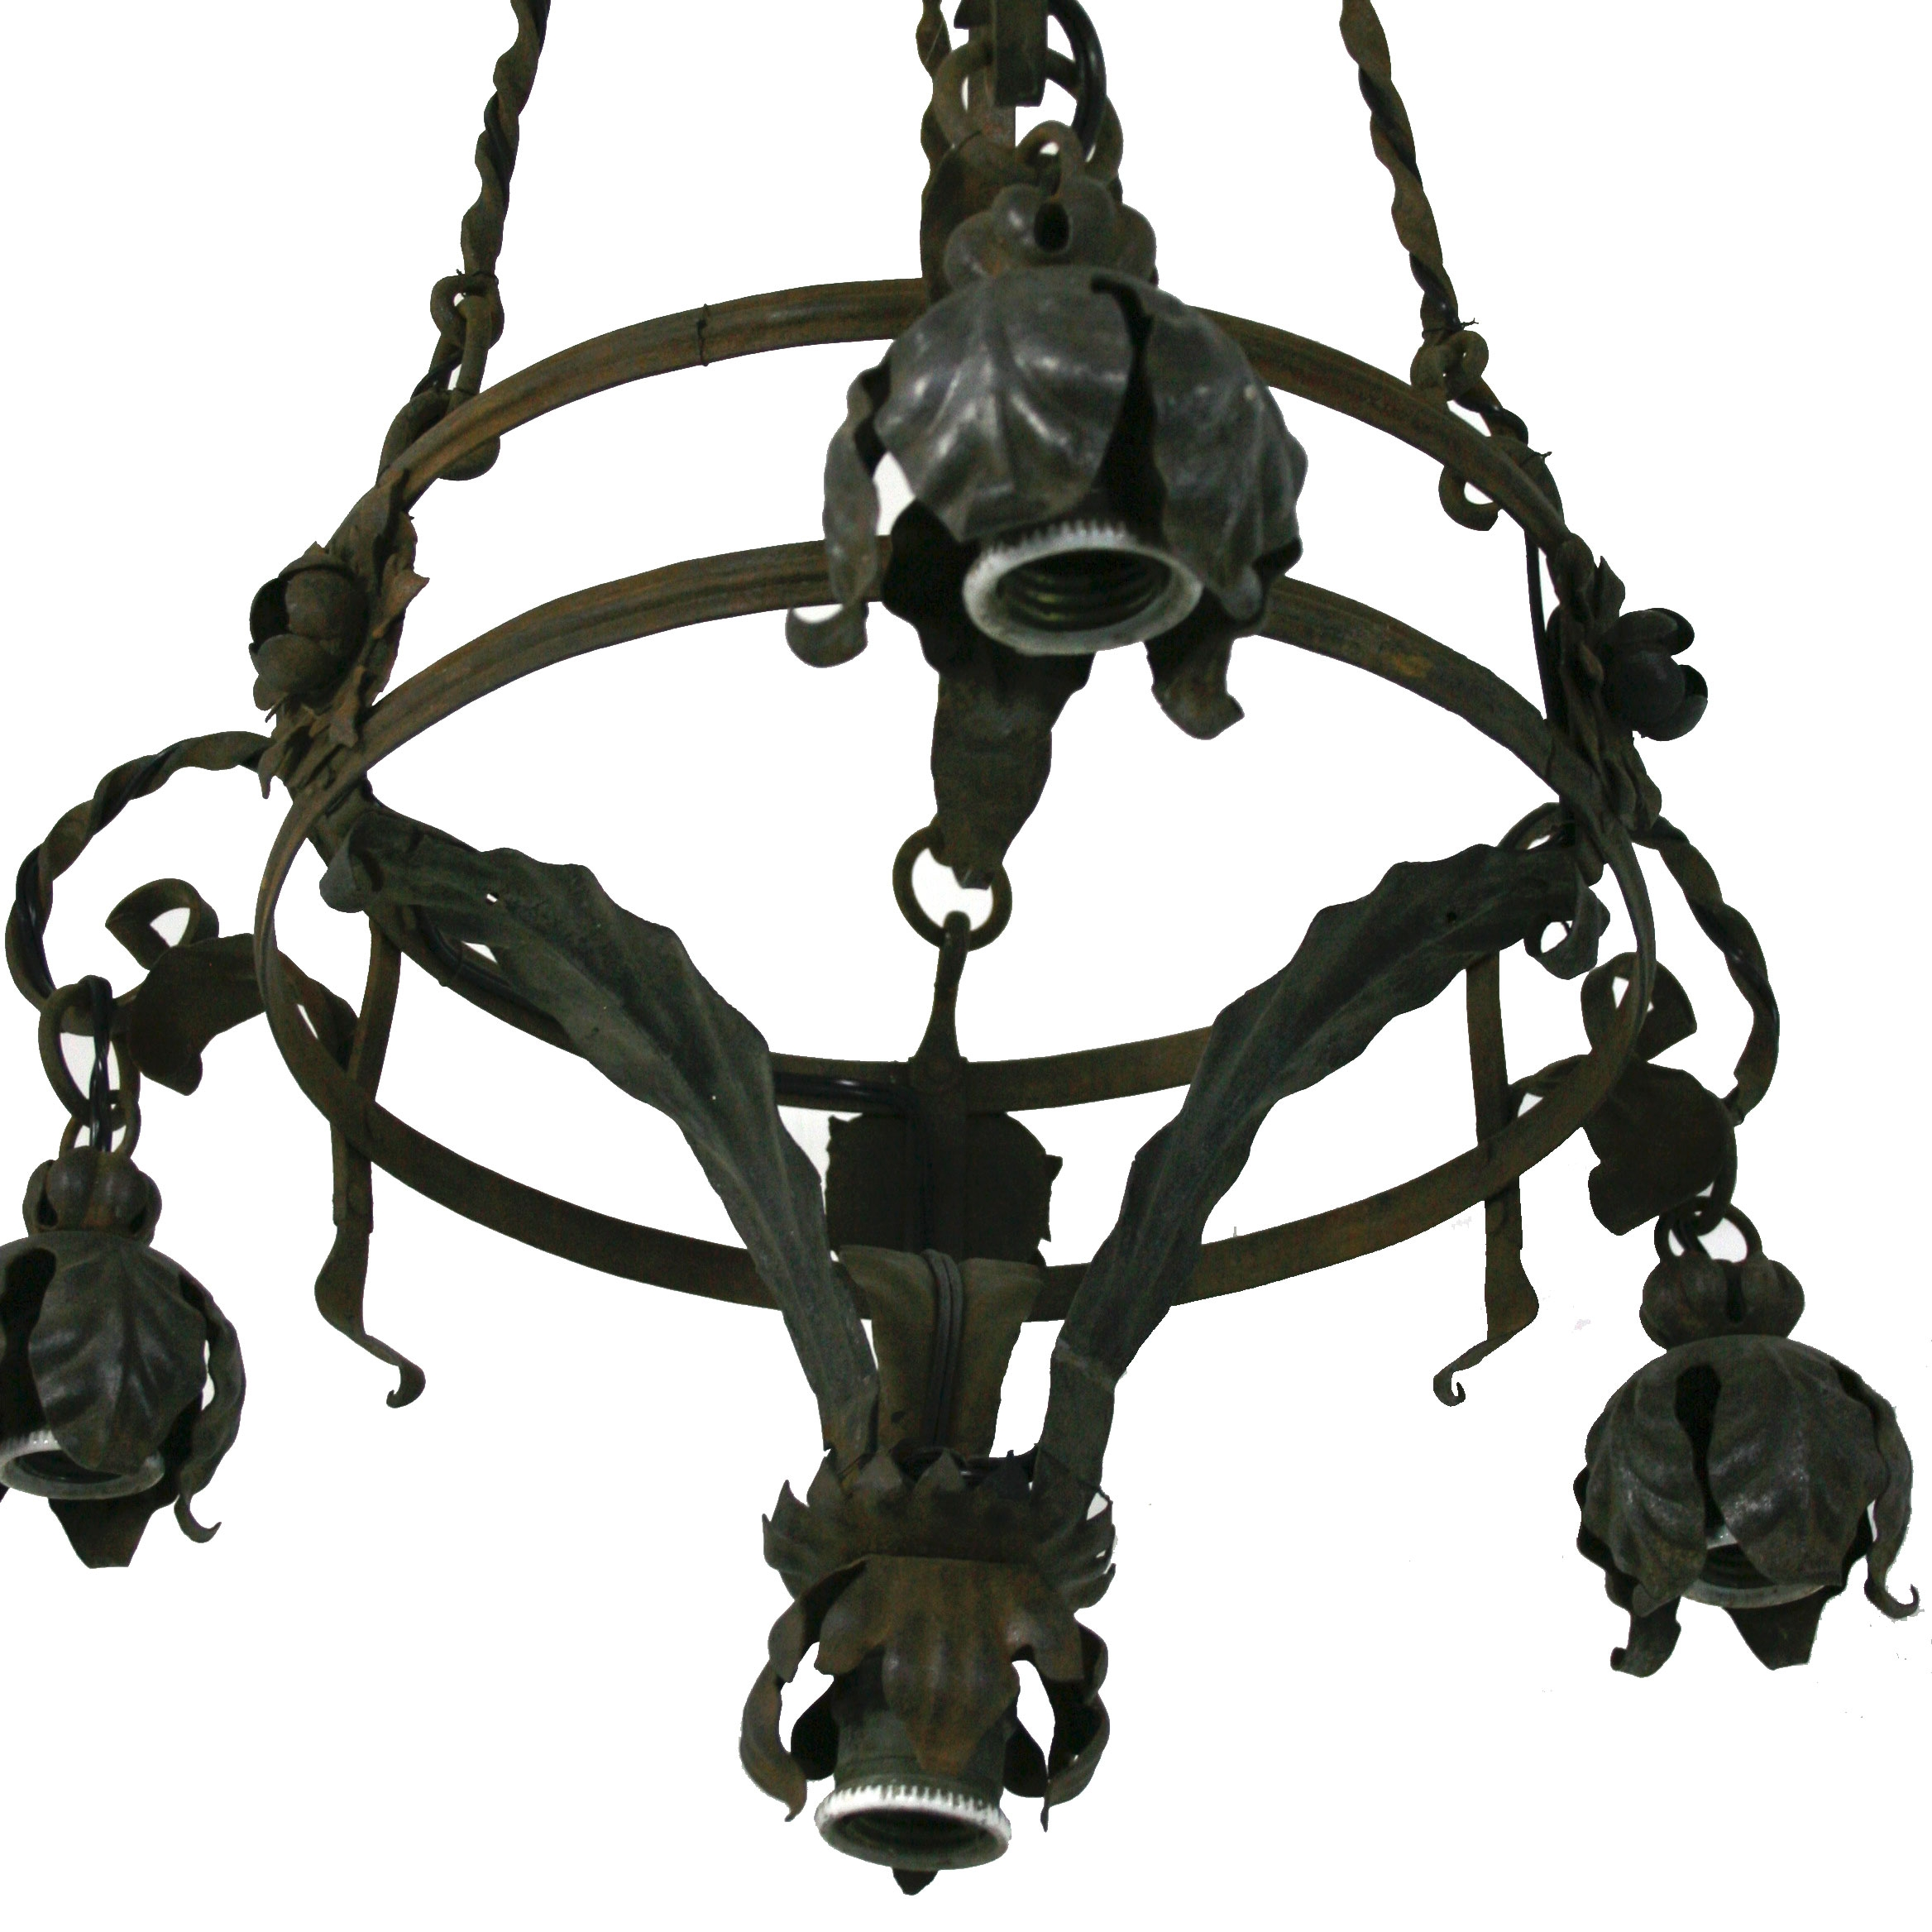 Vintage Italian Wrought Iron Chandelier Omero Home For Vintage Wrought Iron Chandelier (Image 9 of 15)